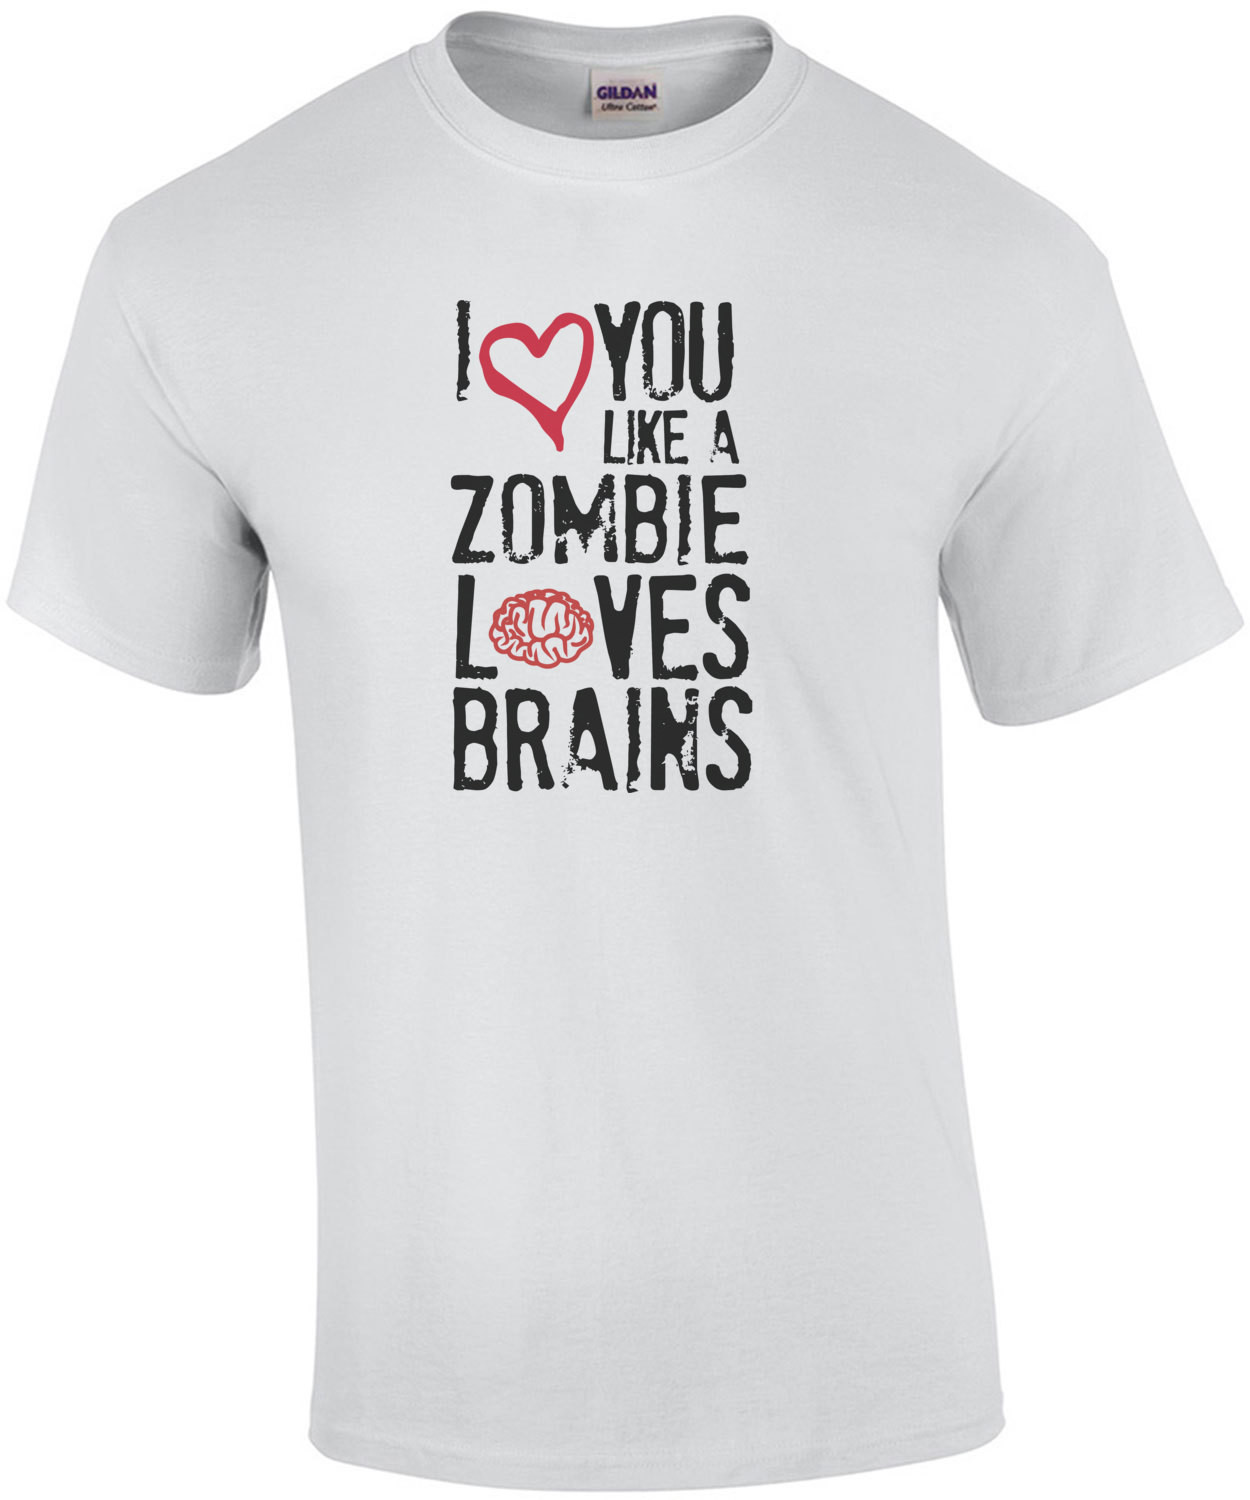 I love you like zombies love brains. Funny T-Shirt